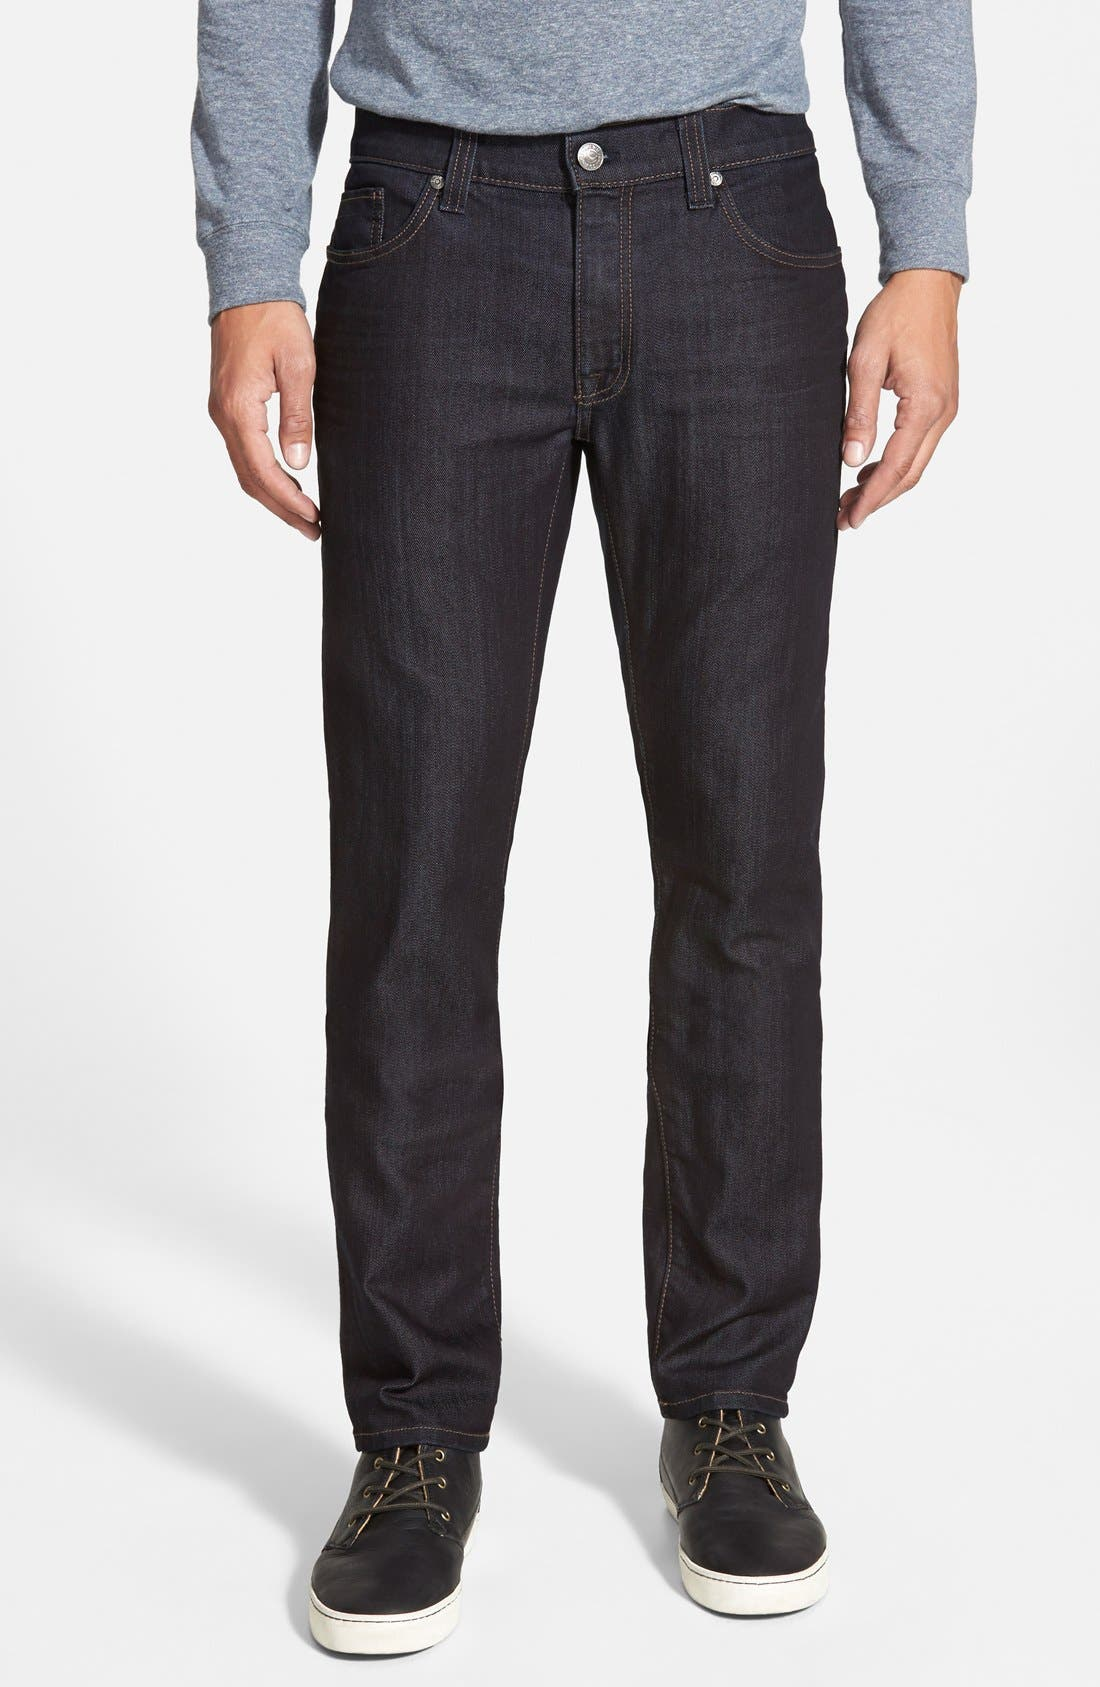 Fidelity Denim Torino Slim Fit Jeans (Revolution Rinse)